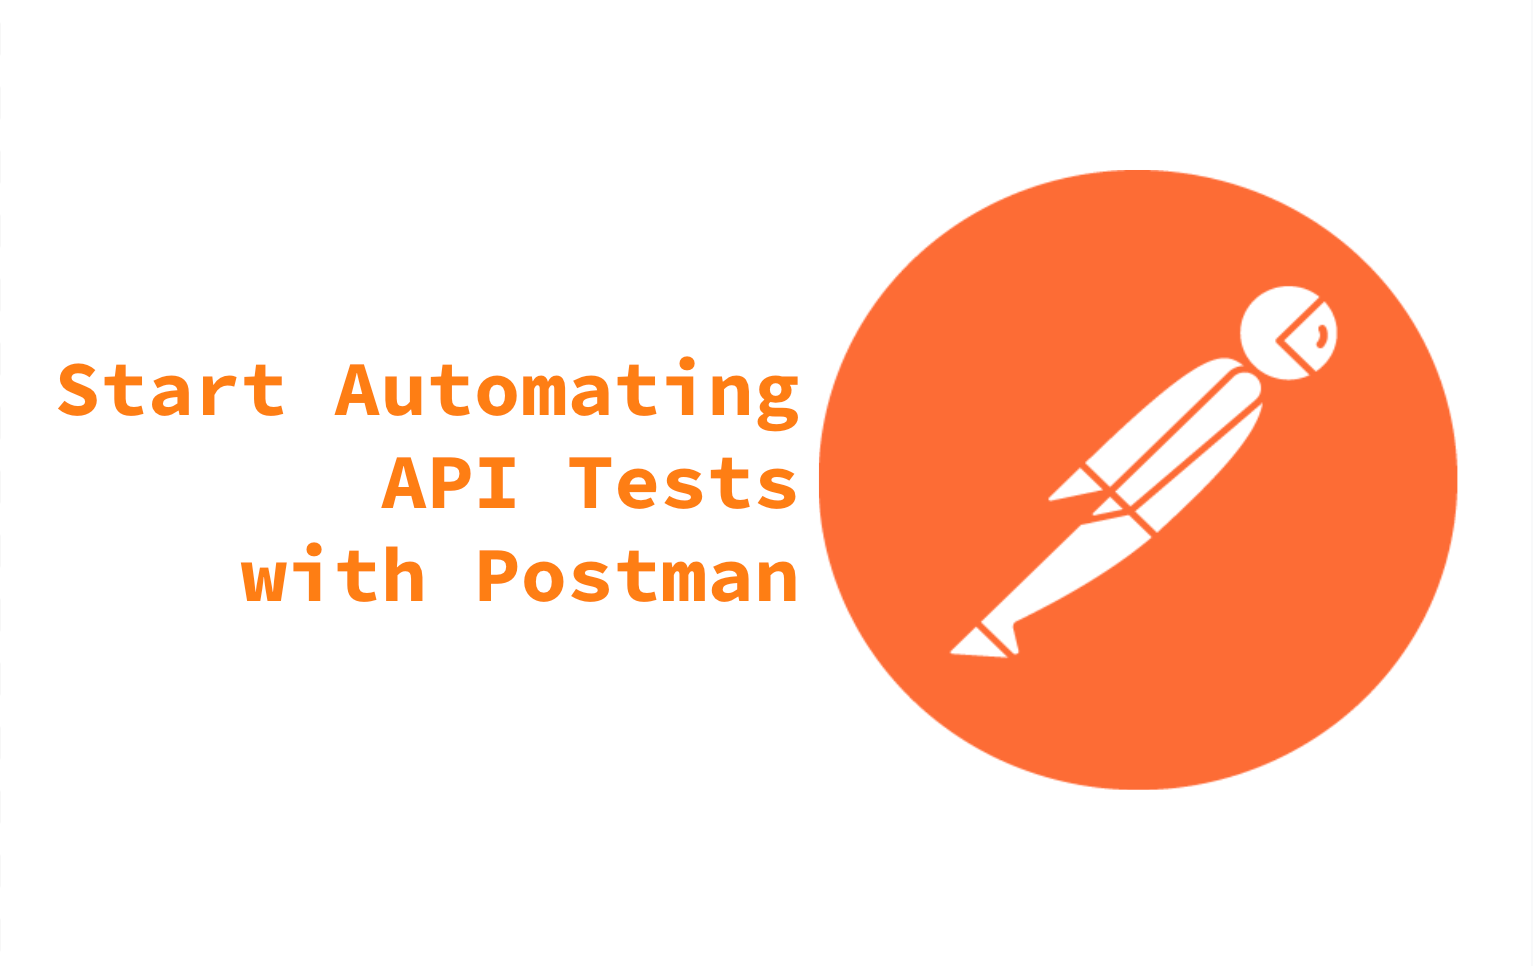 Start Automating API Tests with Postman